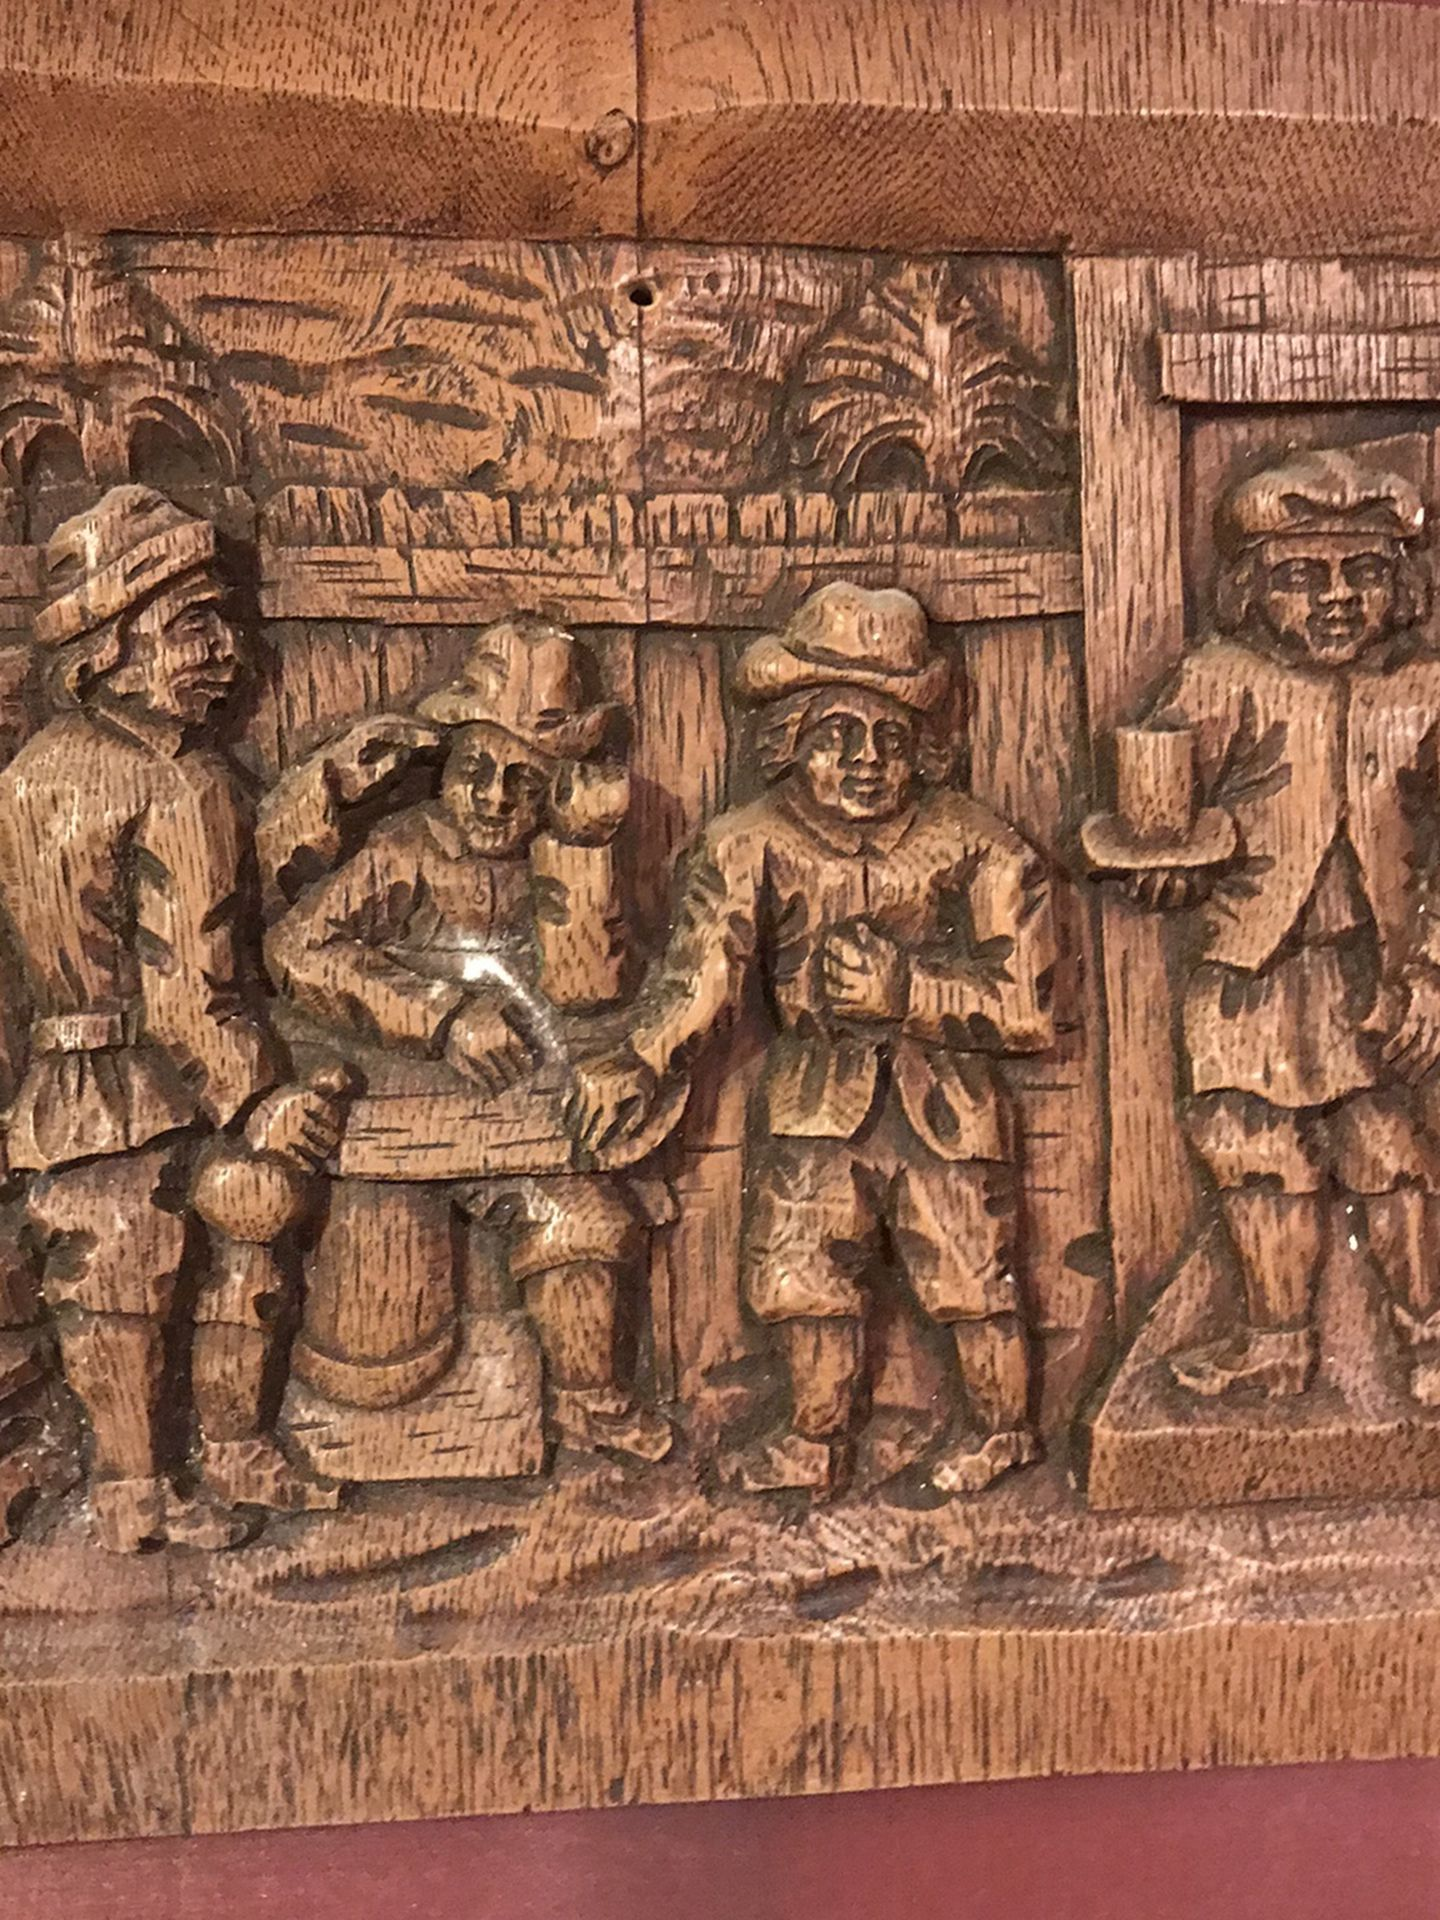 1700s bar scene Wall mount Carving